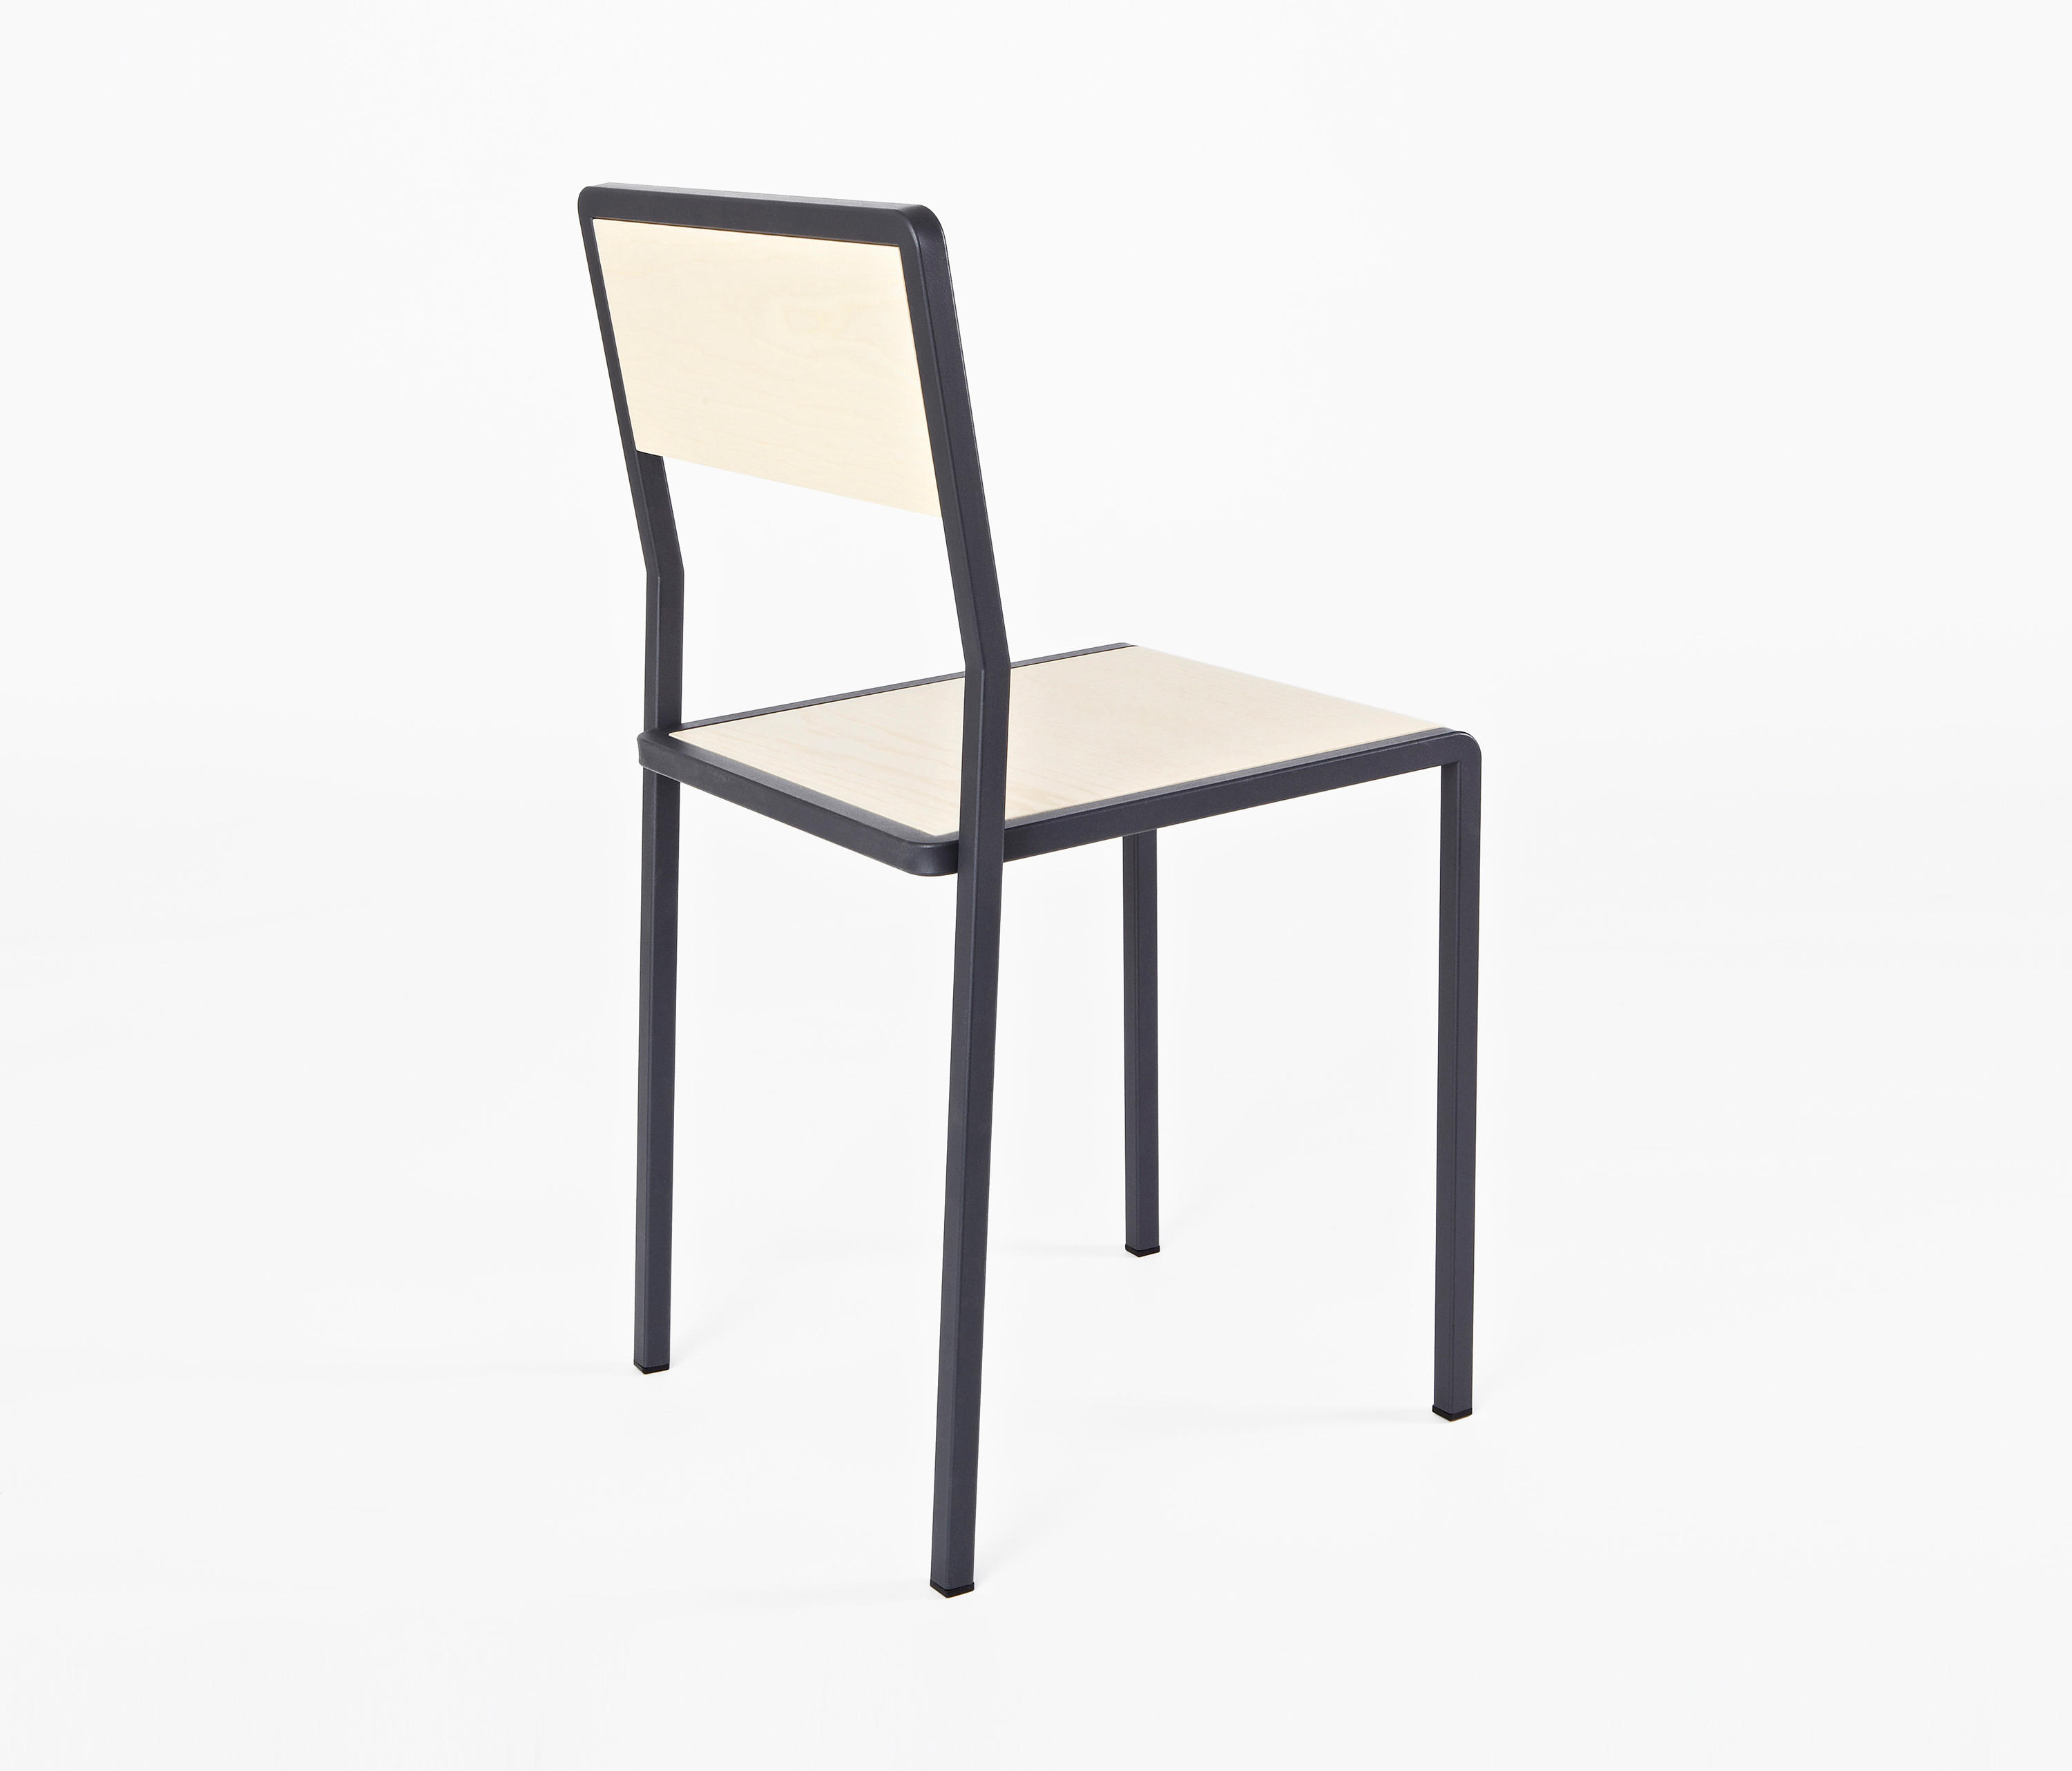 KNEE CHAIR WOOD FOR NEW DUIVENDRECHT Canteen chairs from